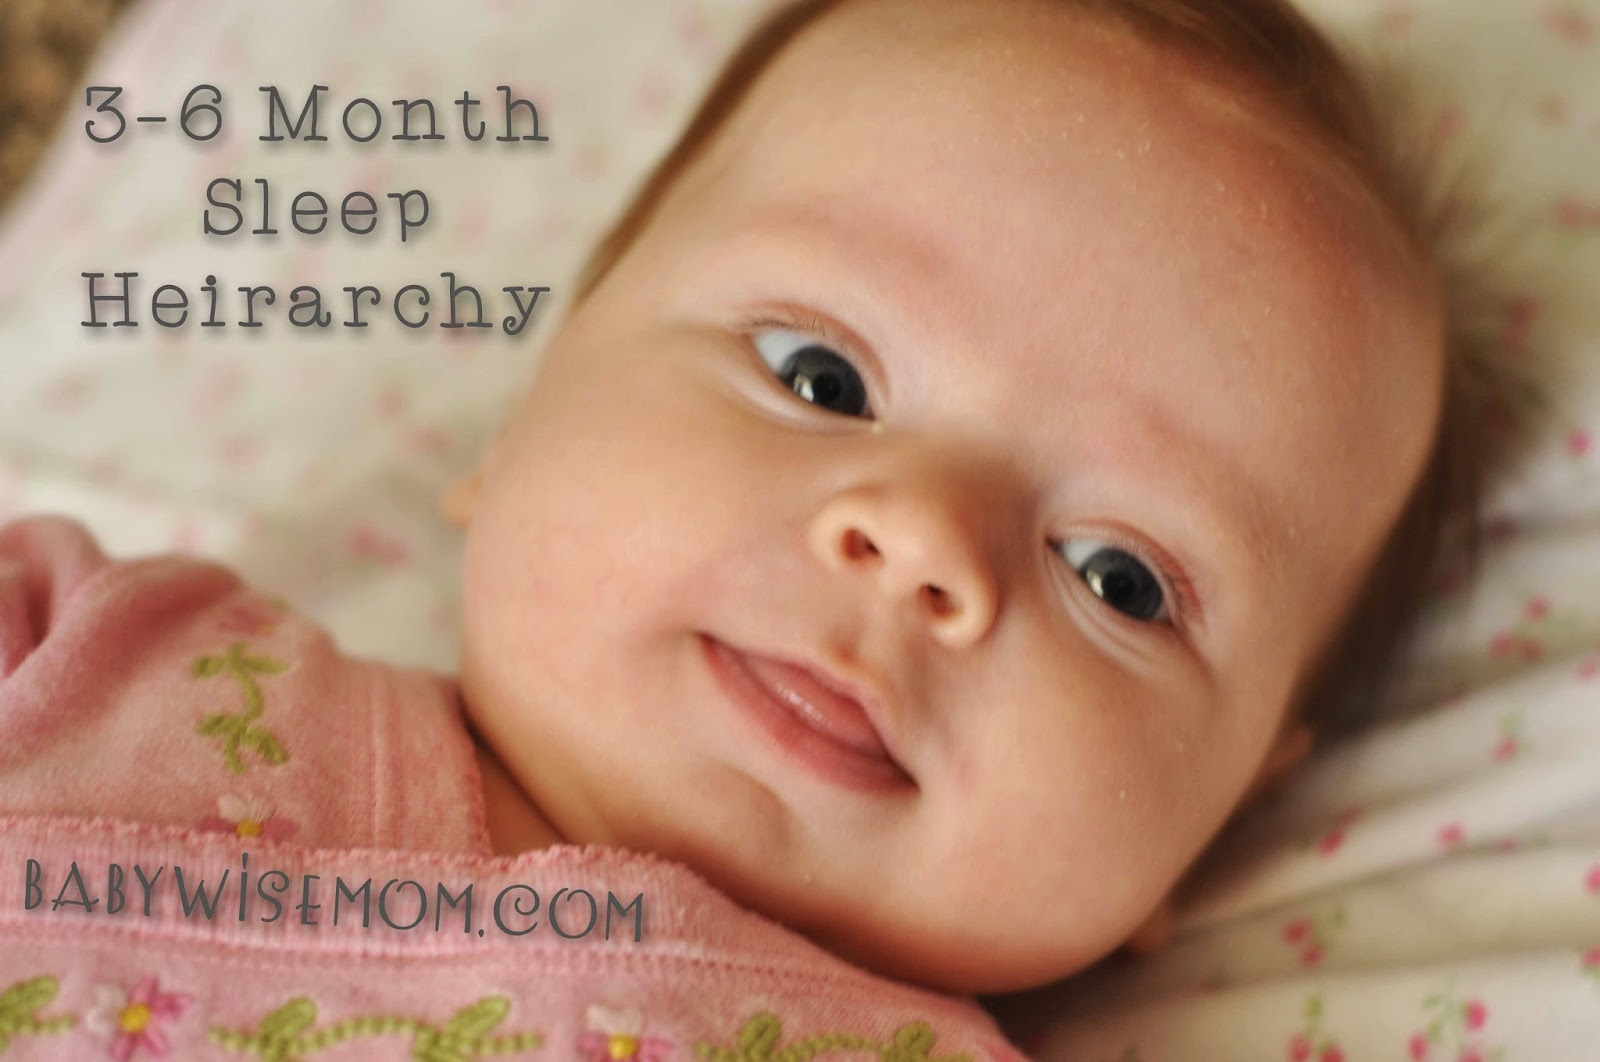 Sleep Hierarchy: 3-6 Months